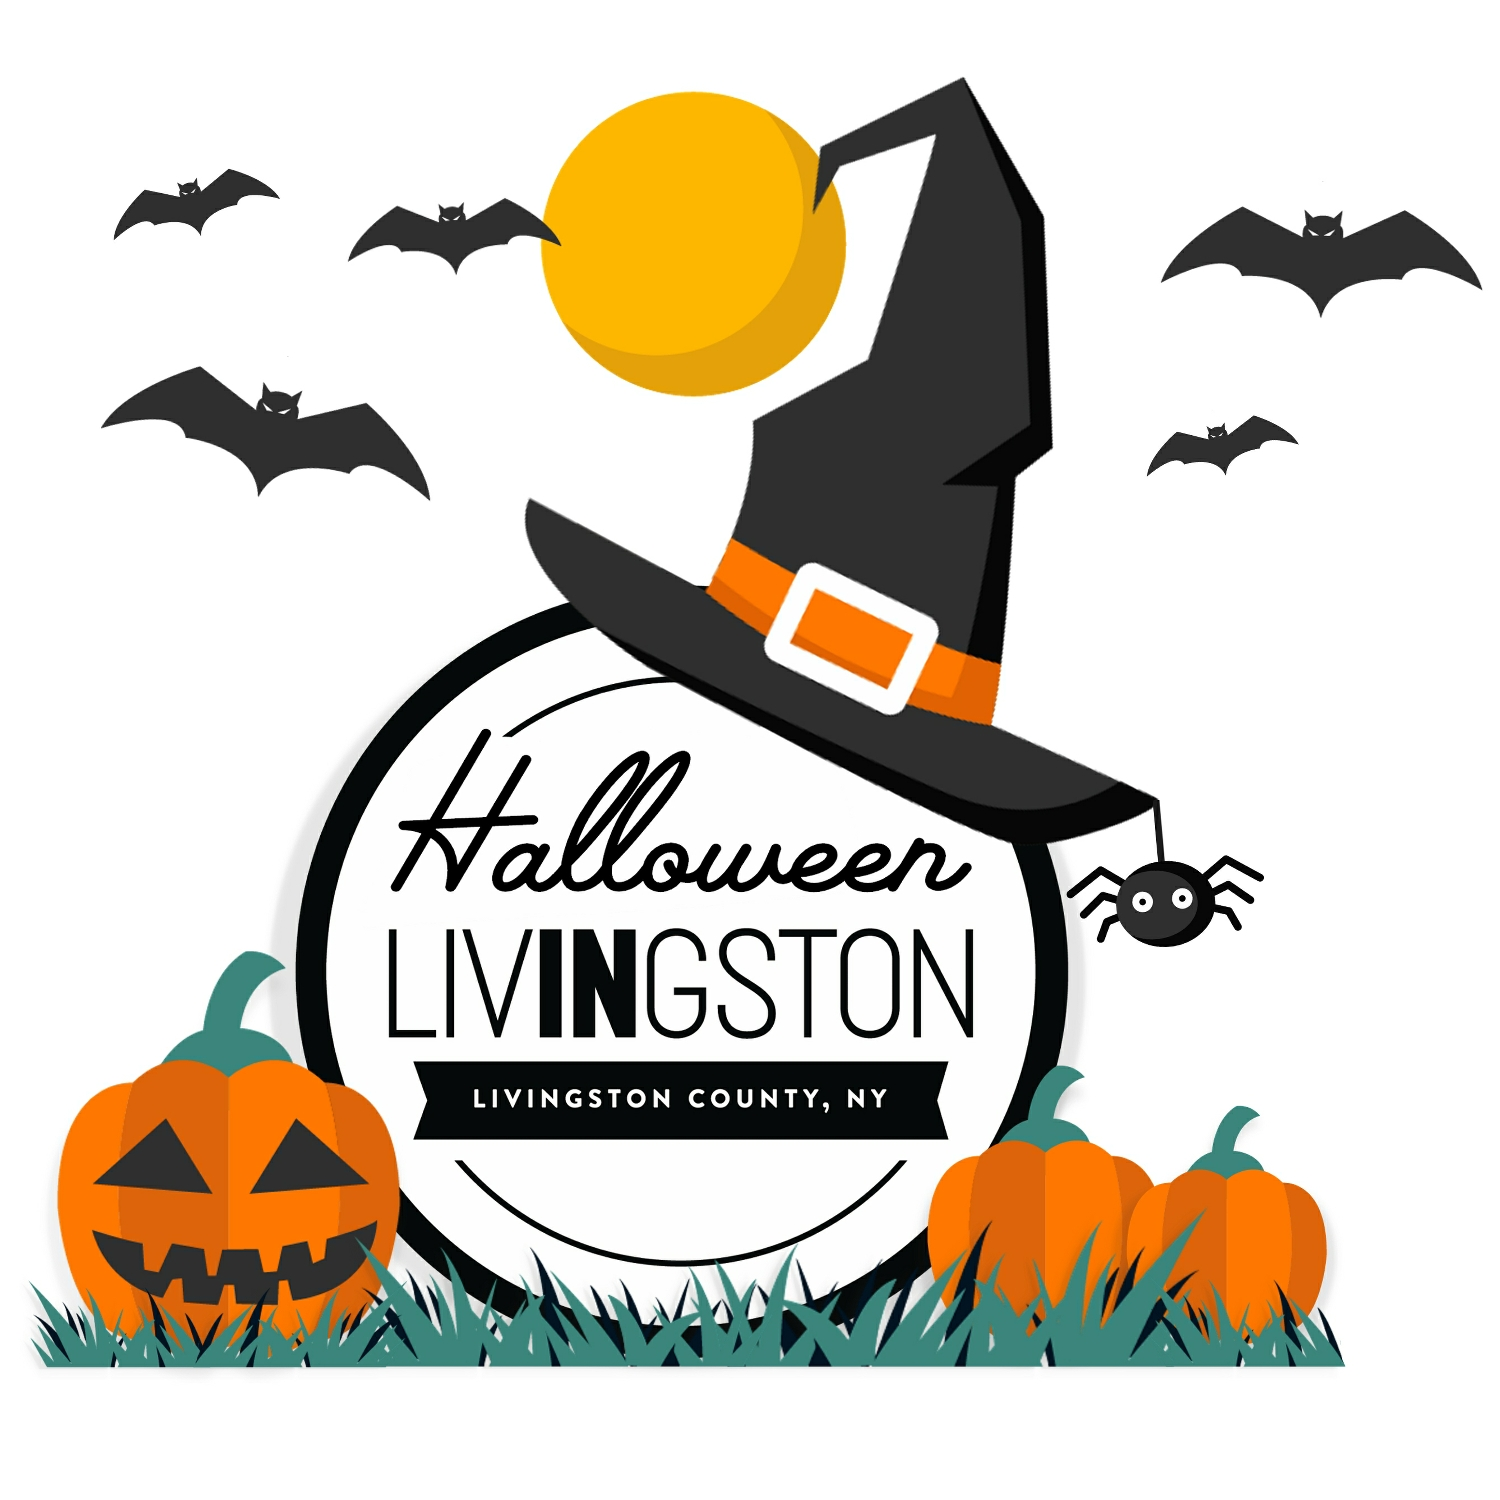 Halloween-IN-Livingston-2018.-square-promo-element.jpg